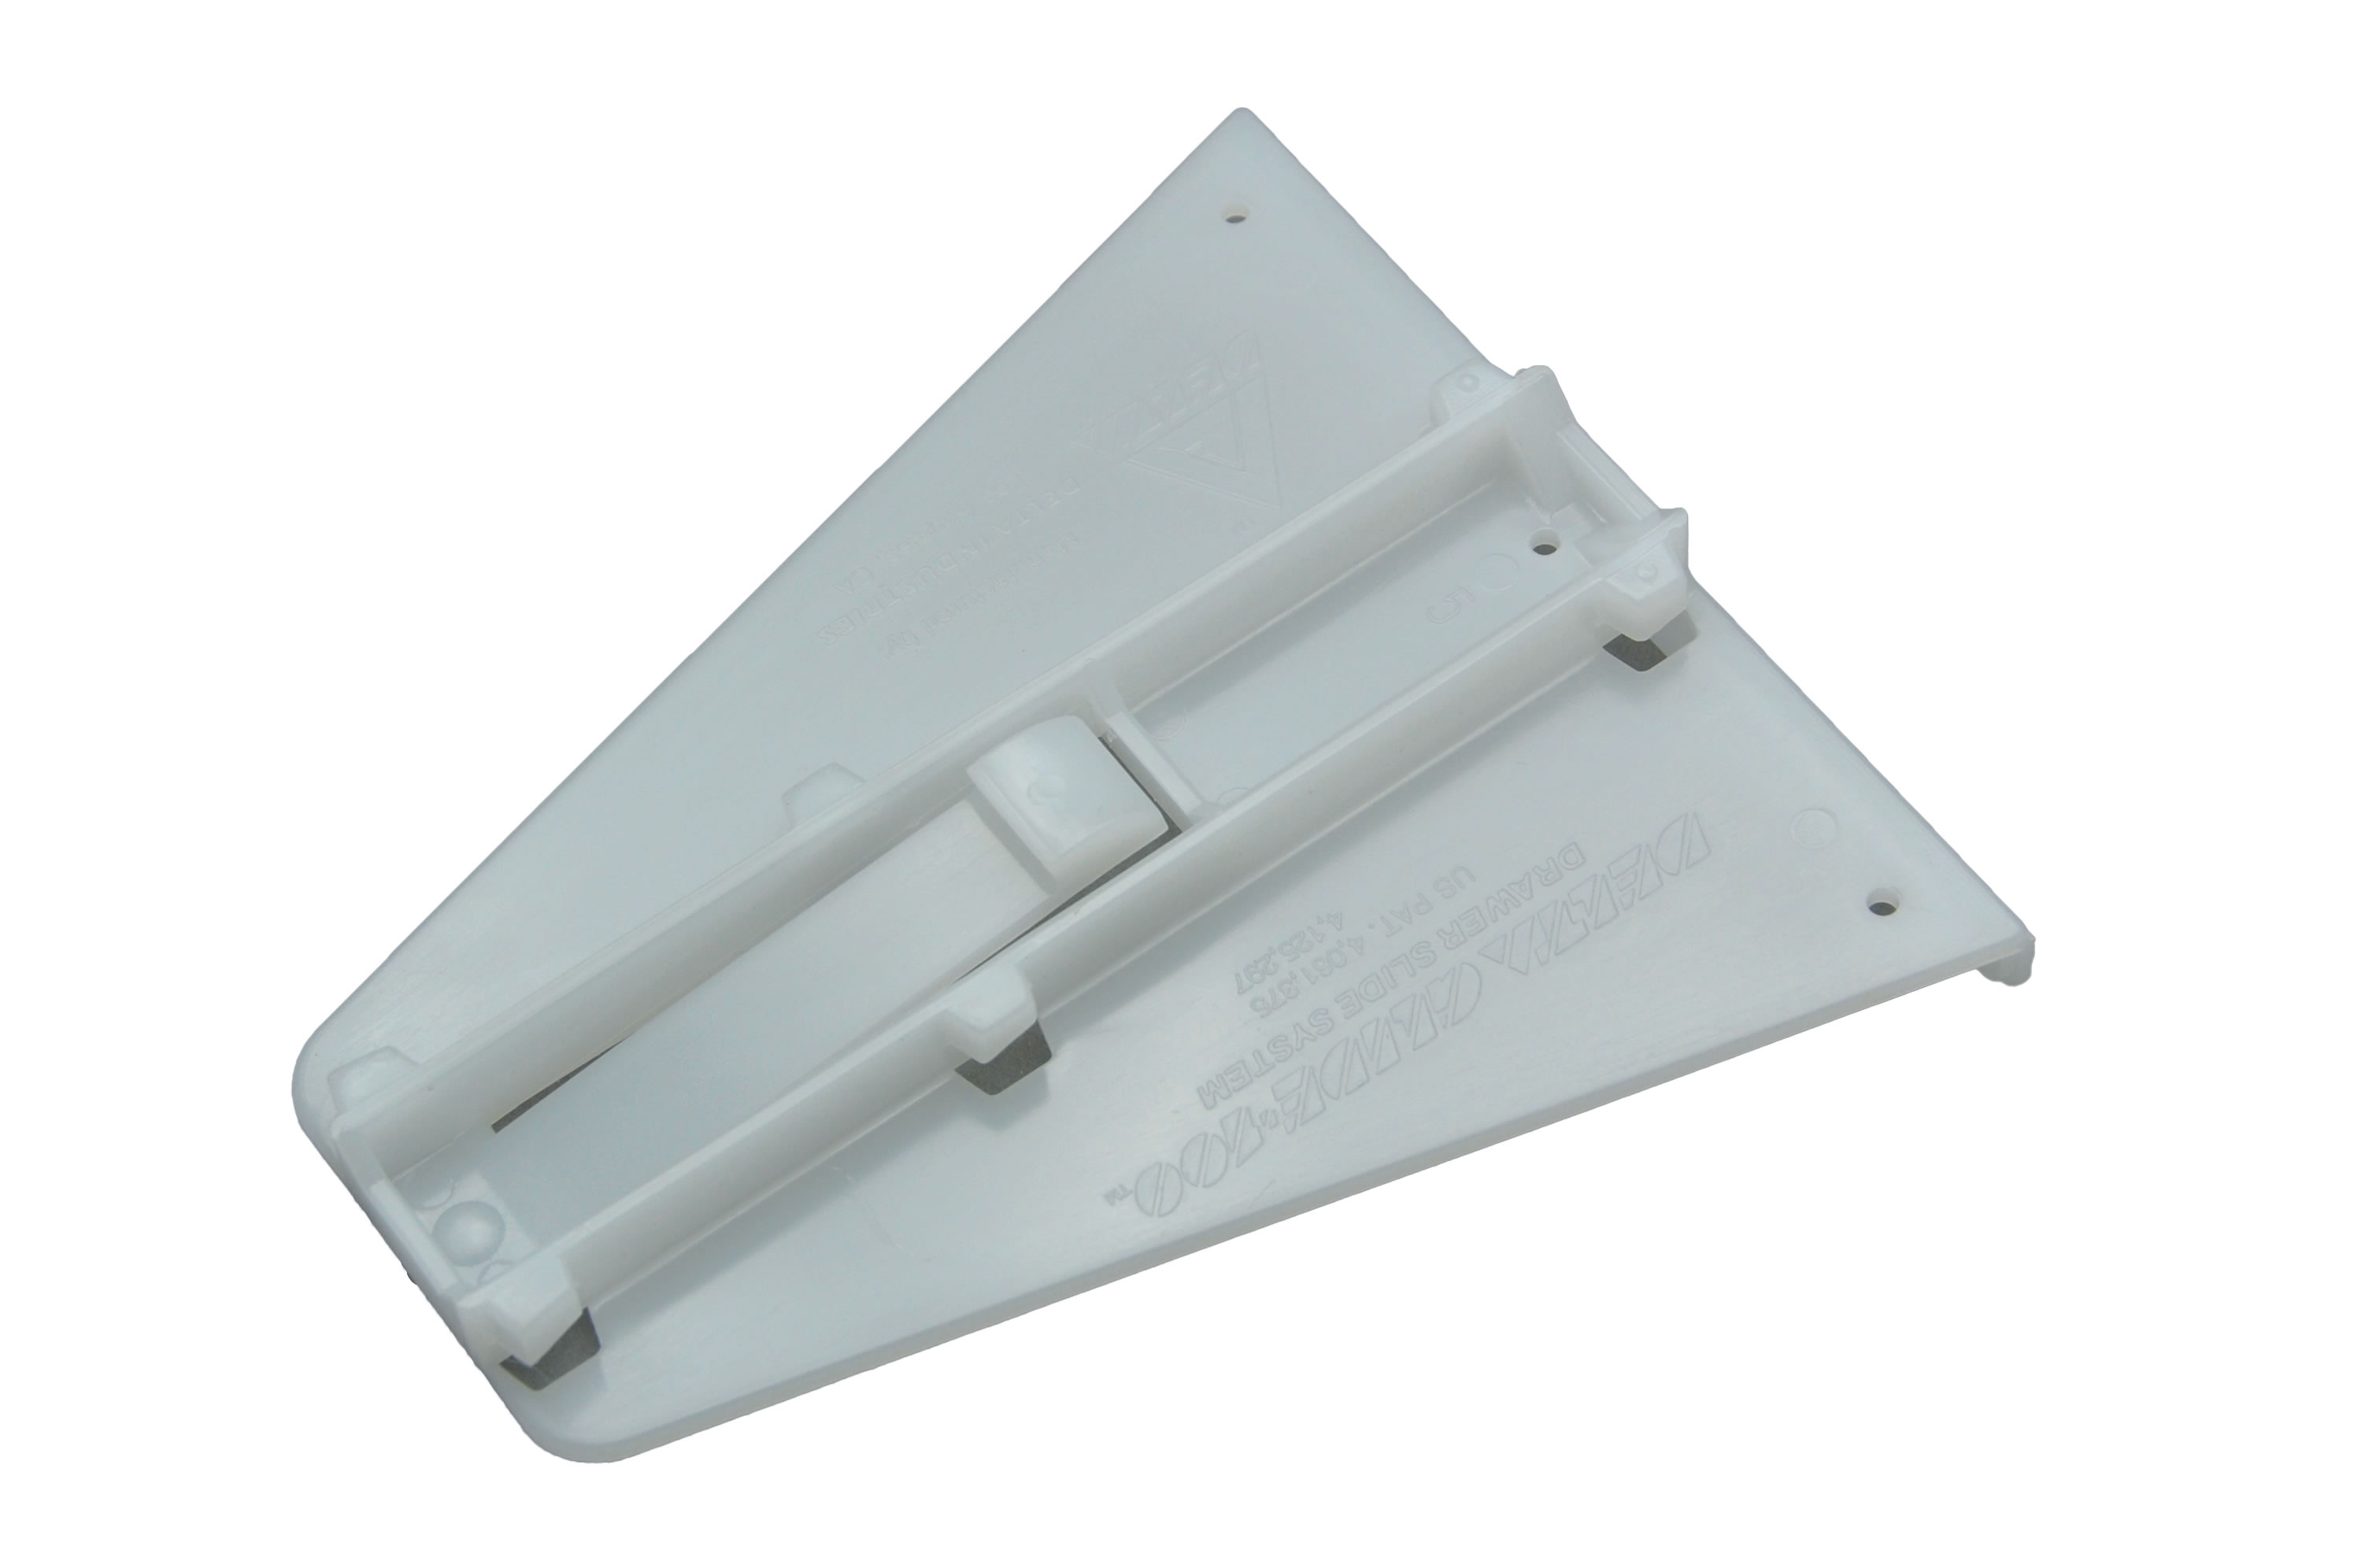 013-110 AP Products Drawer Track Guide Replacement For Delta Monorail